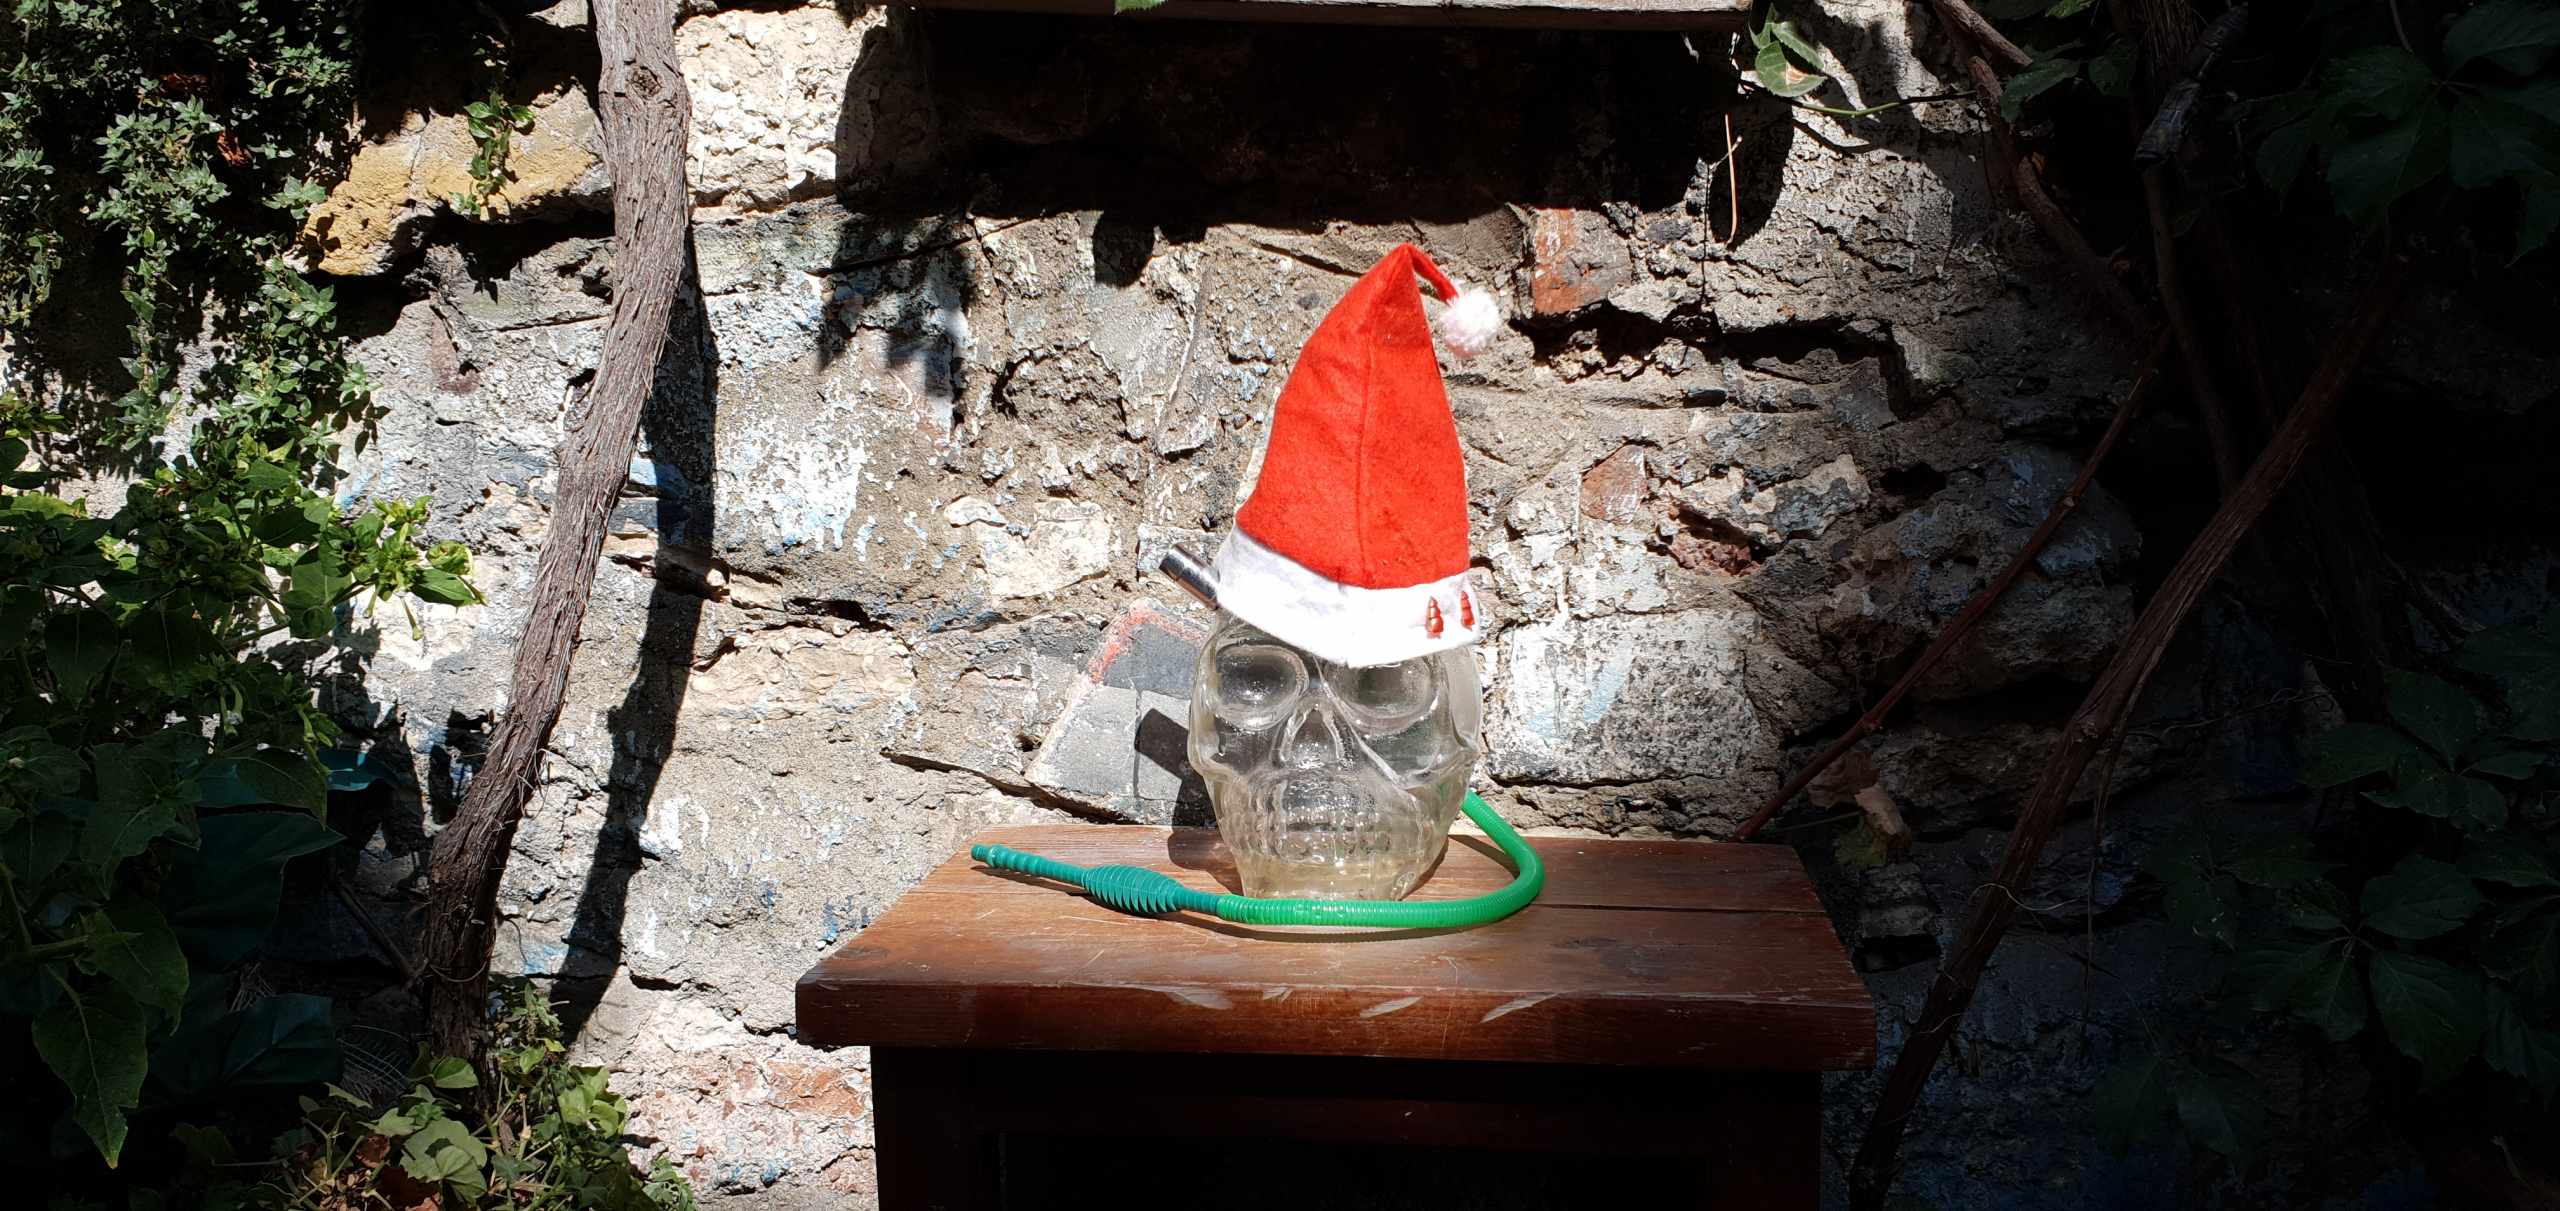 skull with a red hat